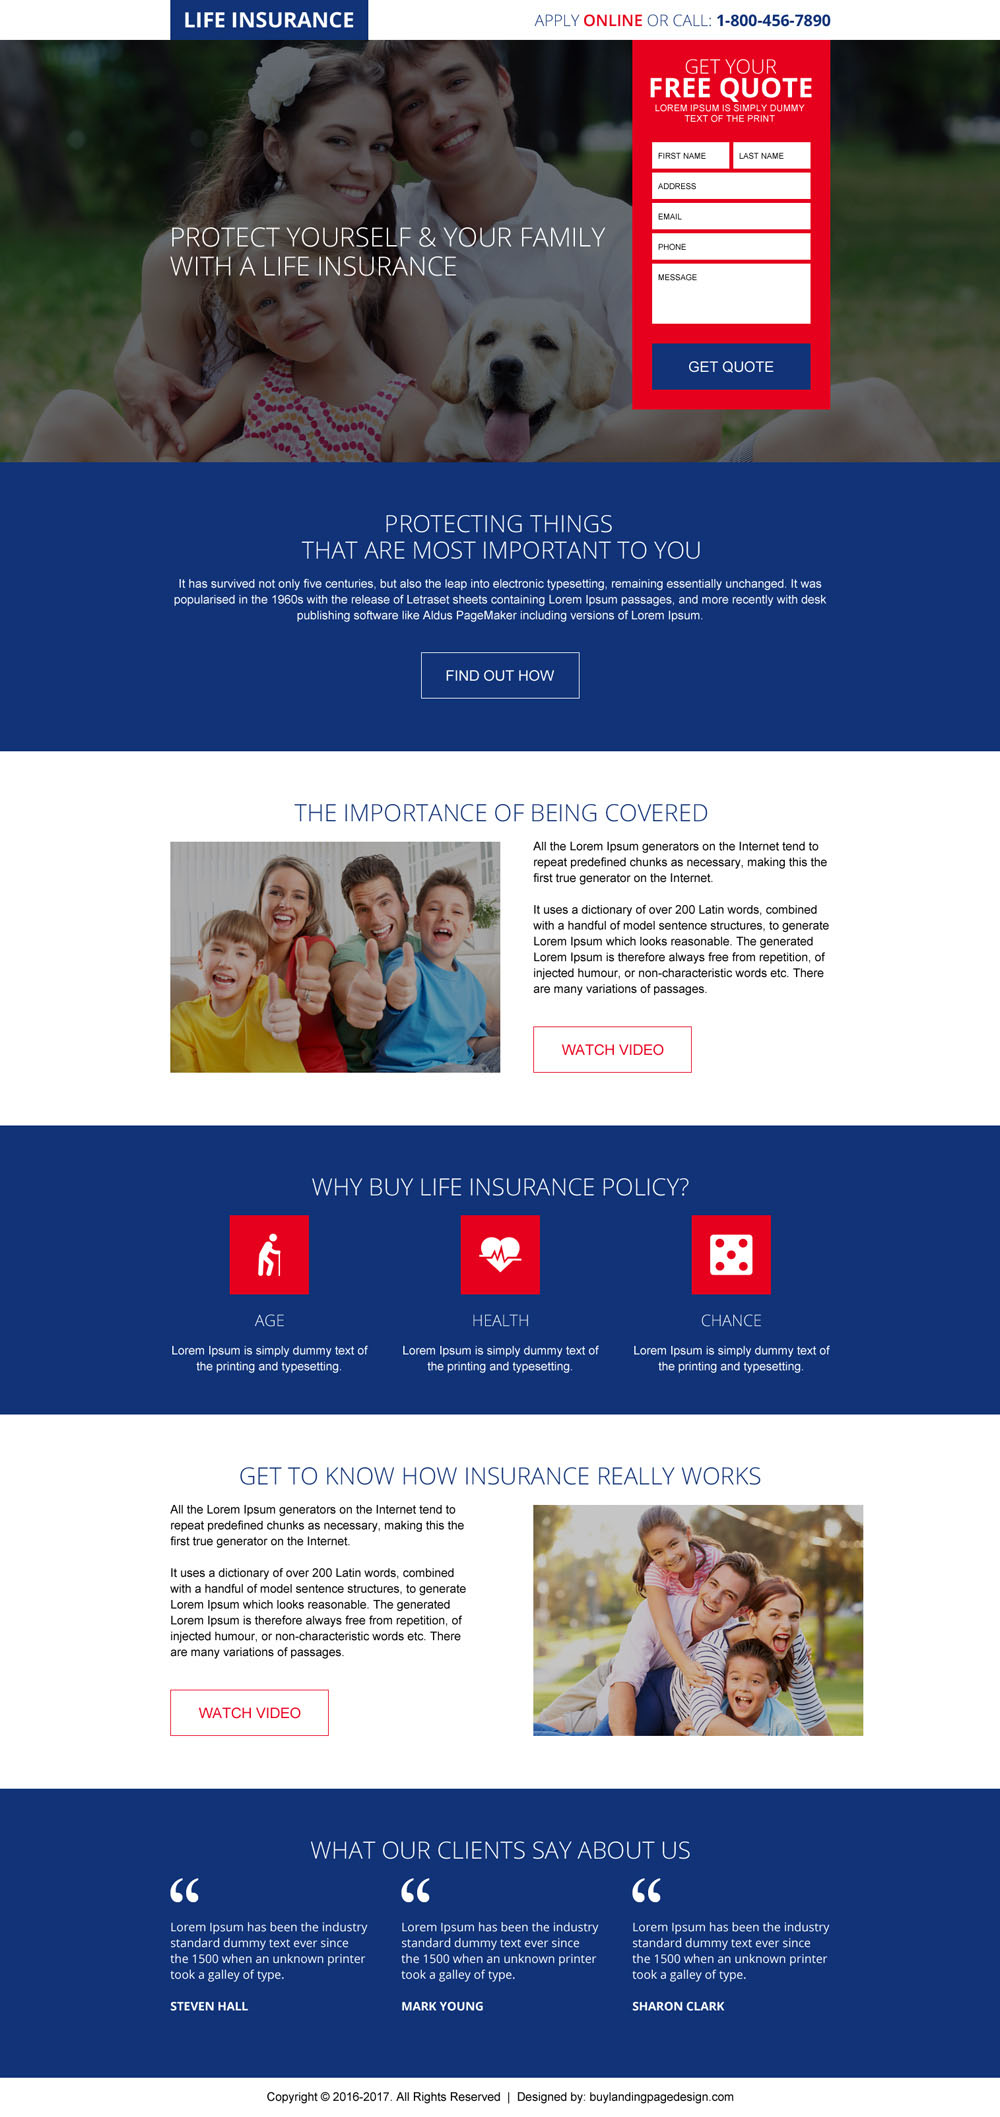 online-free-quote-for-life-insurance-lead-capture-landing-page-design-016